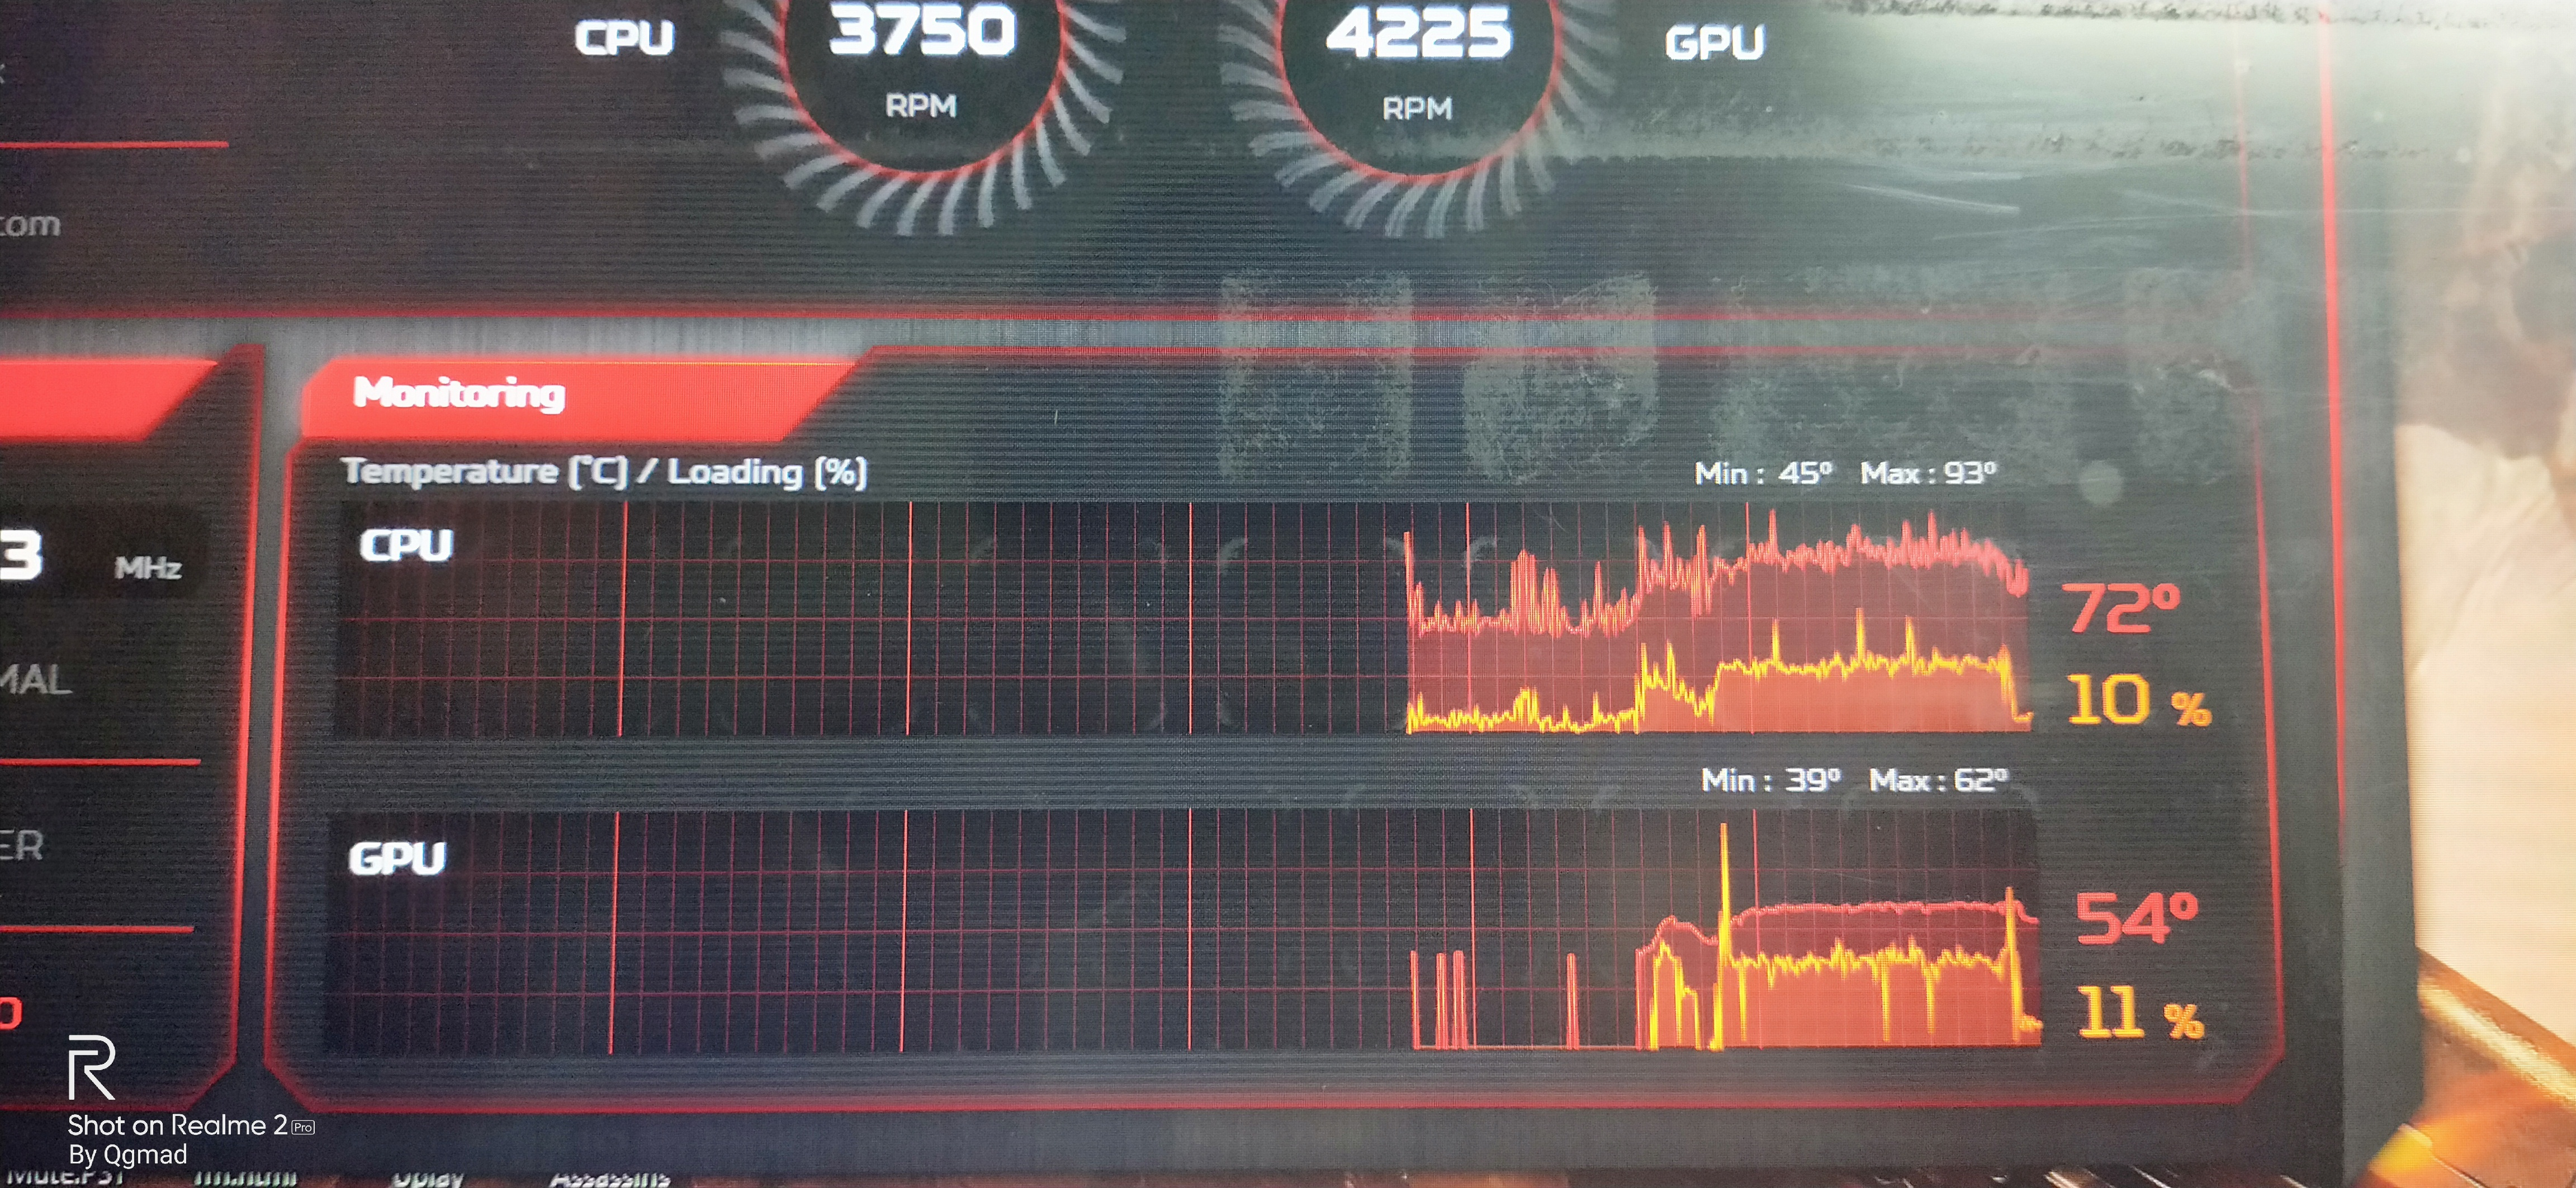 Does Acer Predator Helios 300 heat up during gaming for